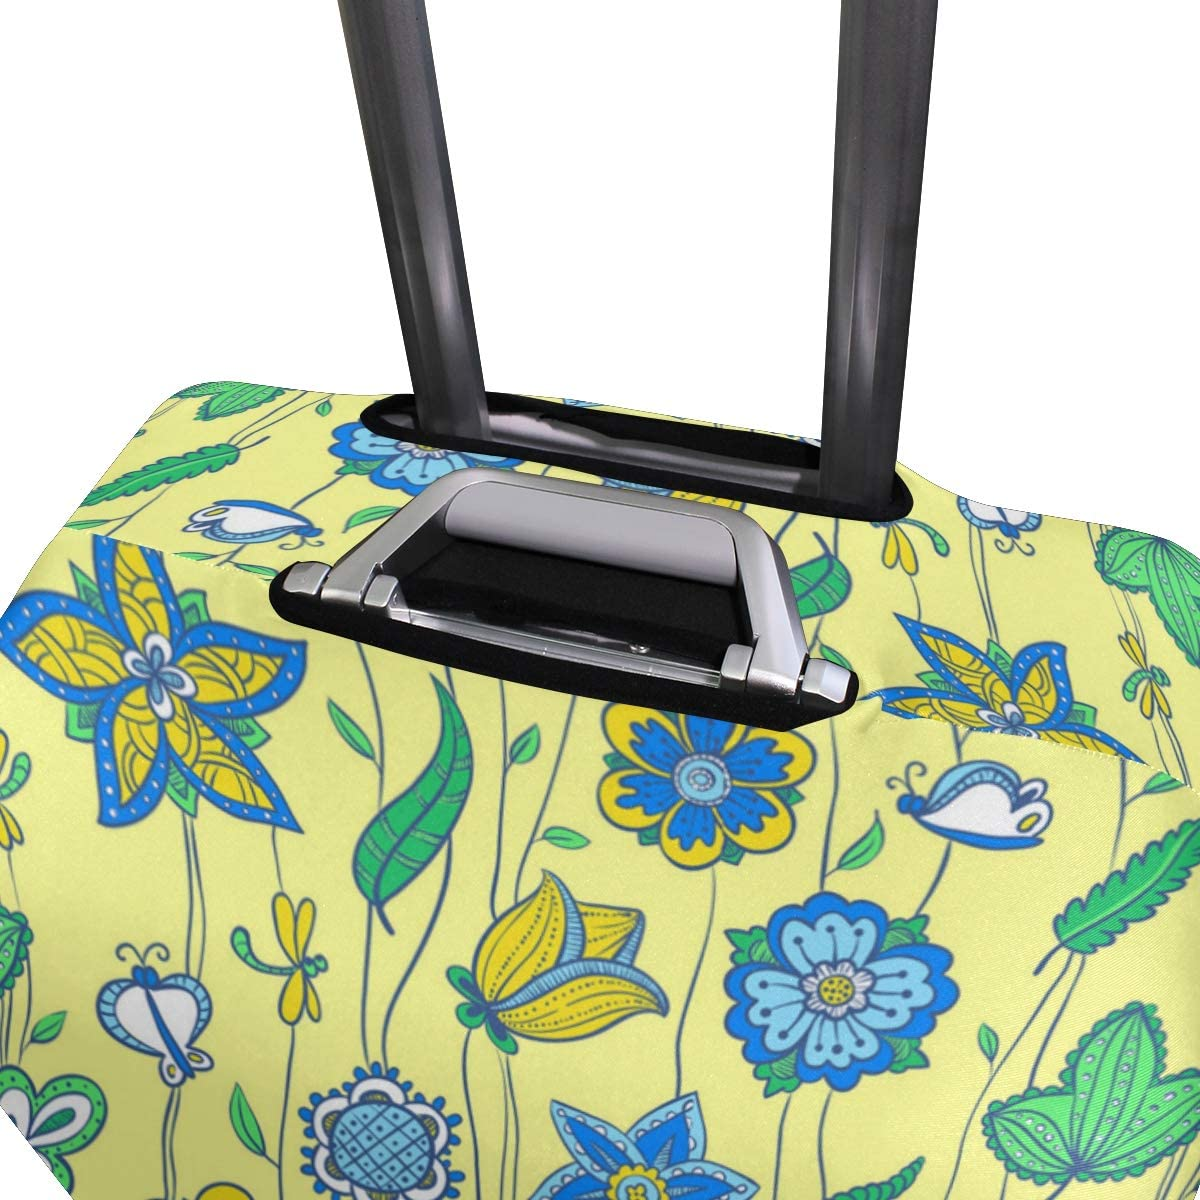 Floral Christmas Wrapping Paper Travel Luggage Protector Case Suitcase Protector For Man/&Woman Fits 18-32 Inch Luggage